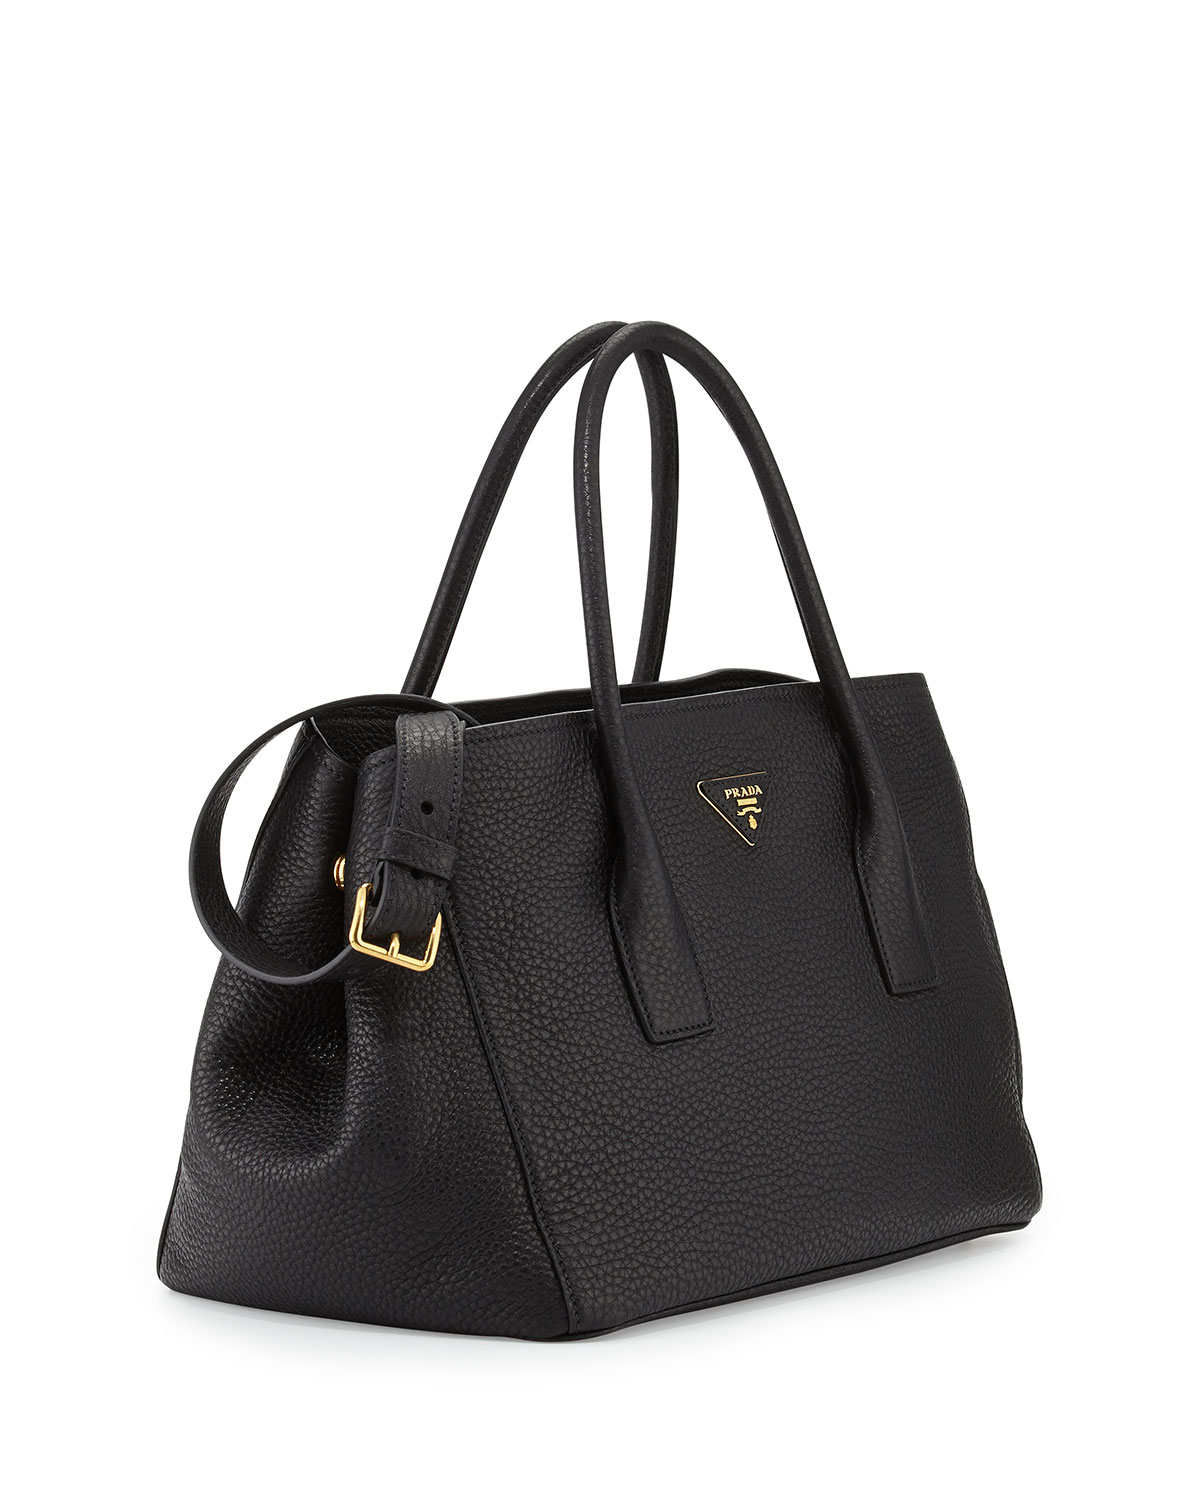 brown prada purse - Prada Vitello Daino Garden Tote Bag in Black (BLACK(NERO)) | Lyst